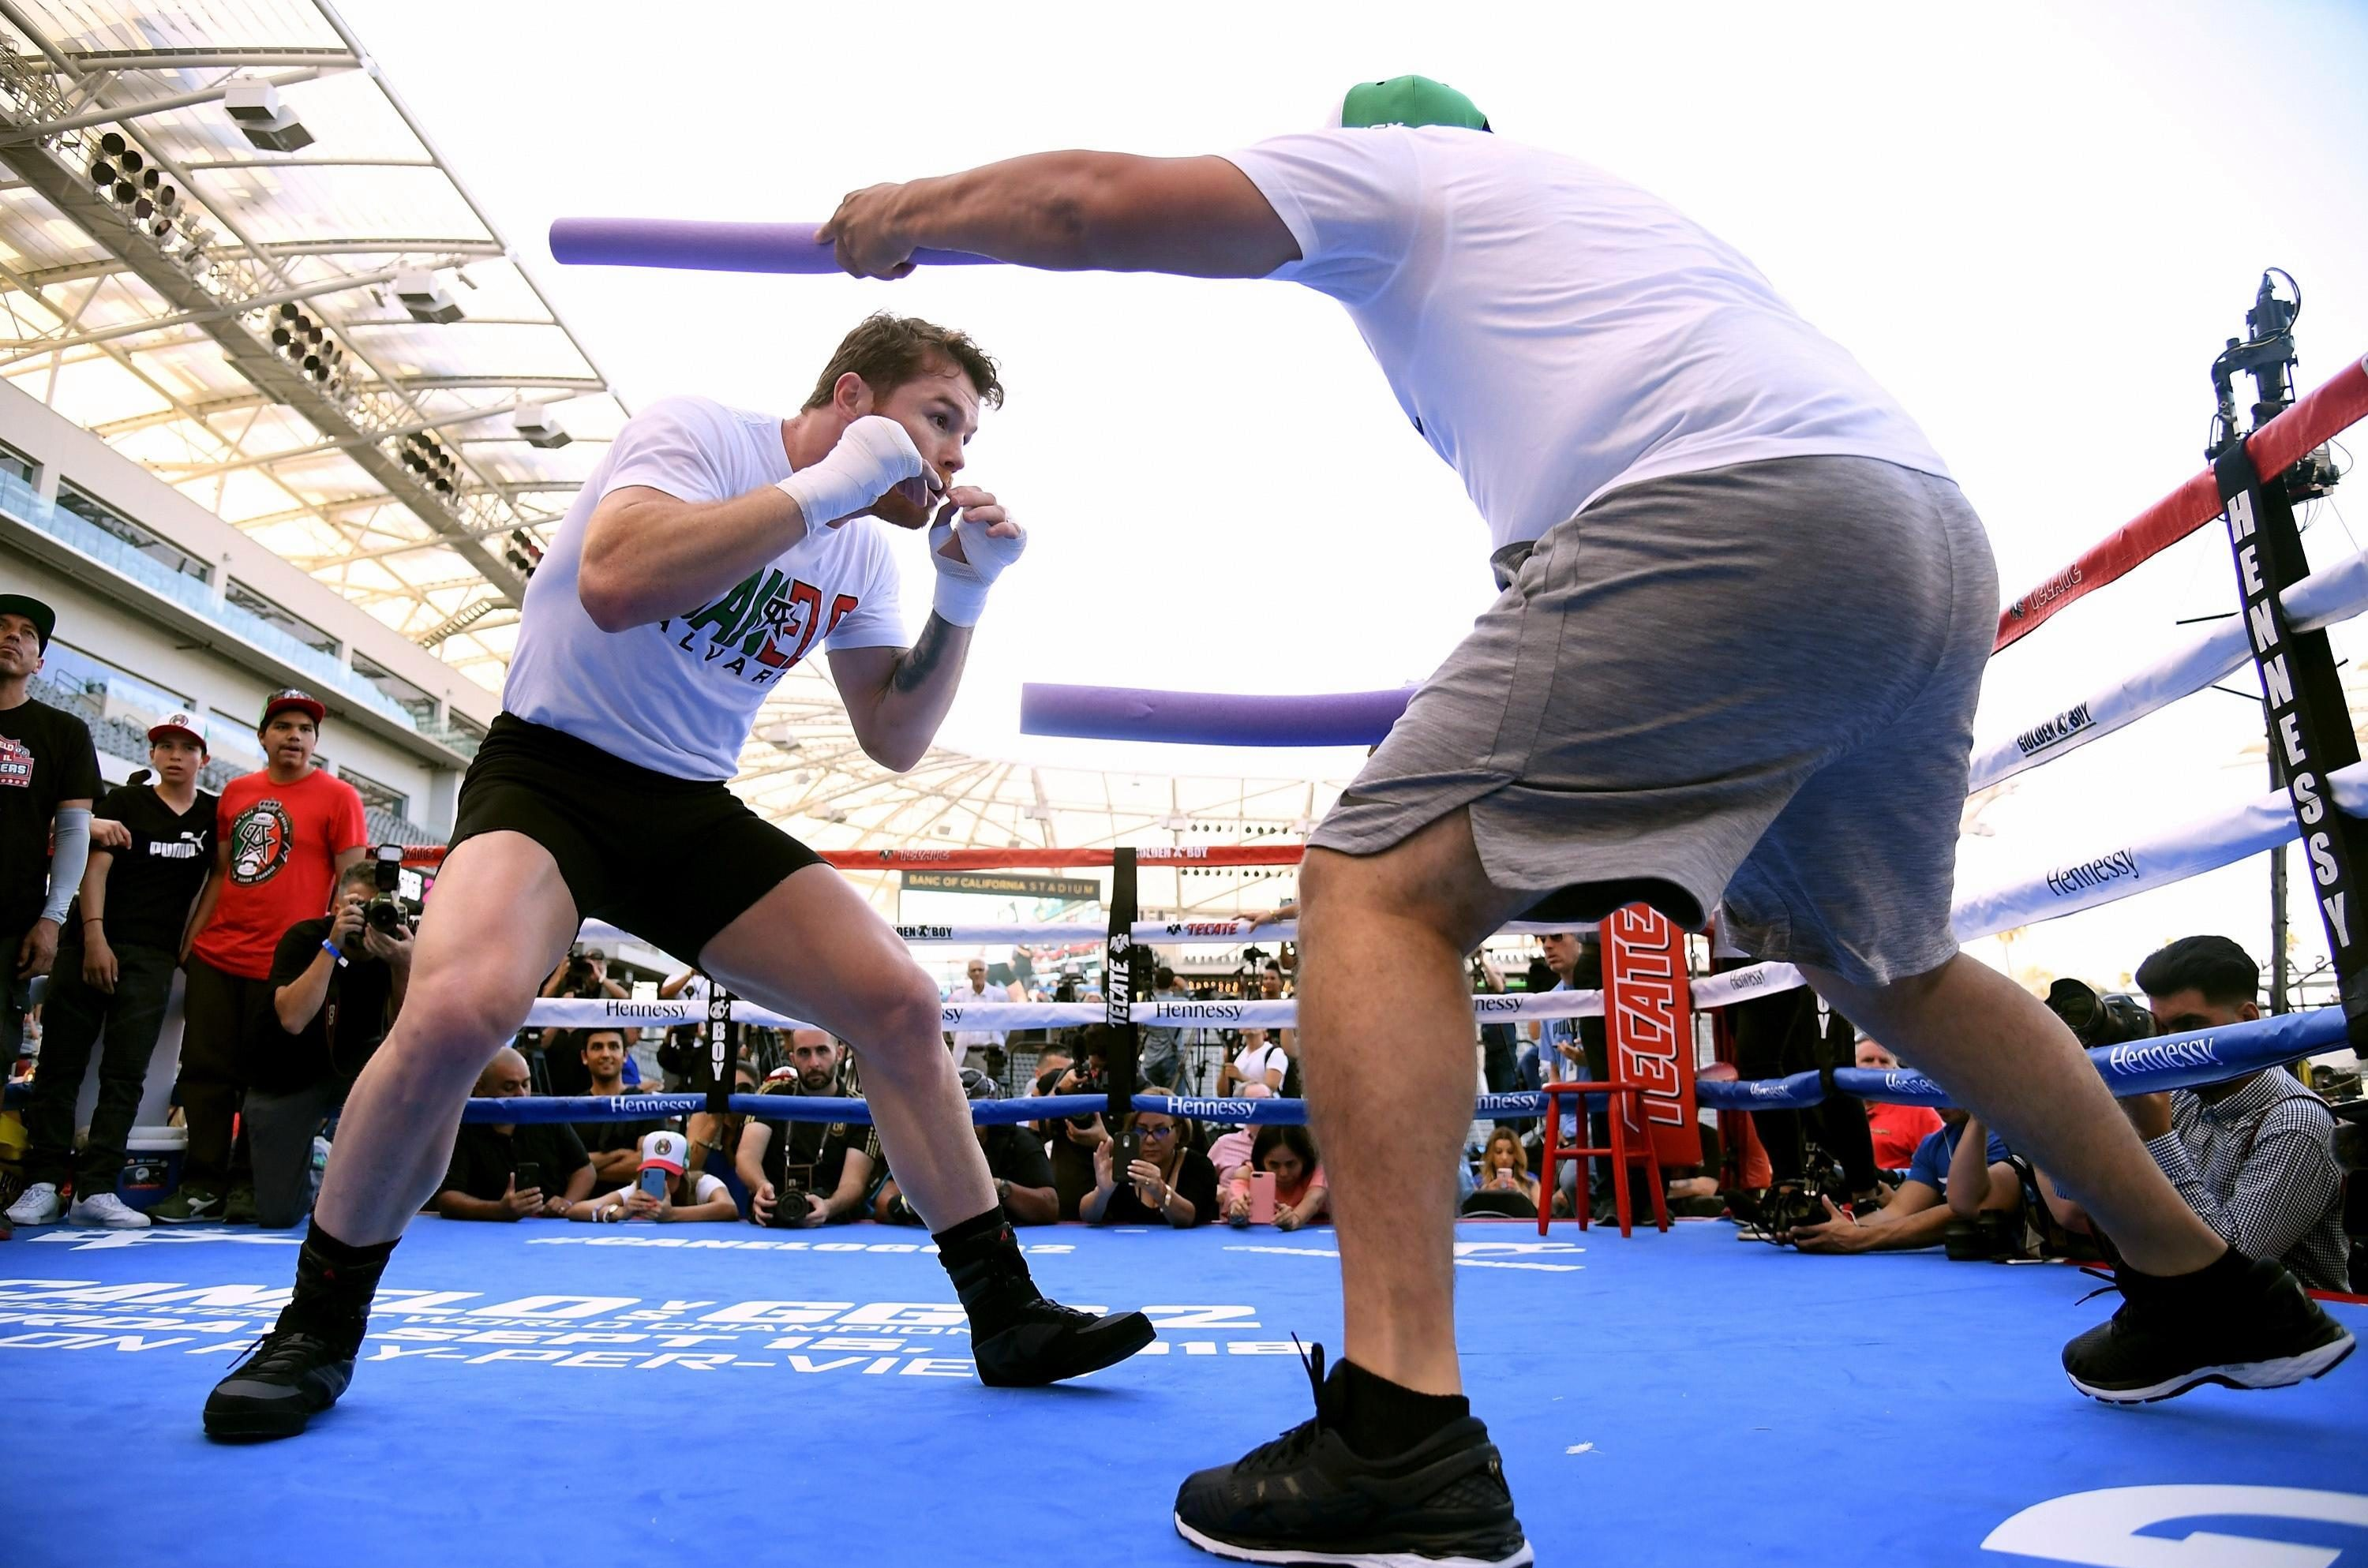 Both fighters took part in a public workout today ahead of the fight